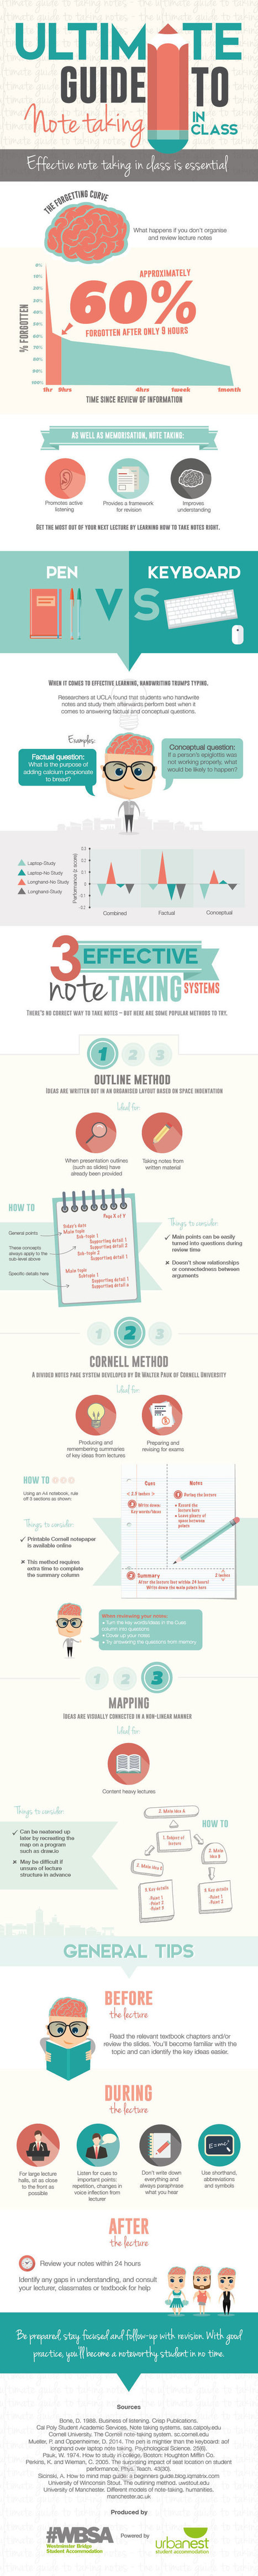 The Ultimate Guide to Note Taking in Class - Infographic | Purposeful Pedagogy | Scoop.it